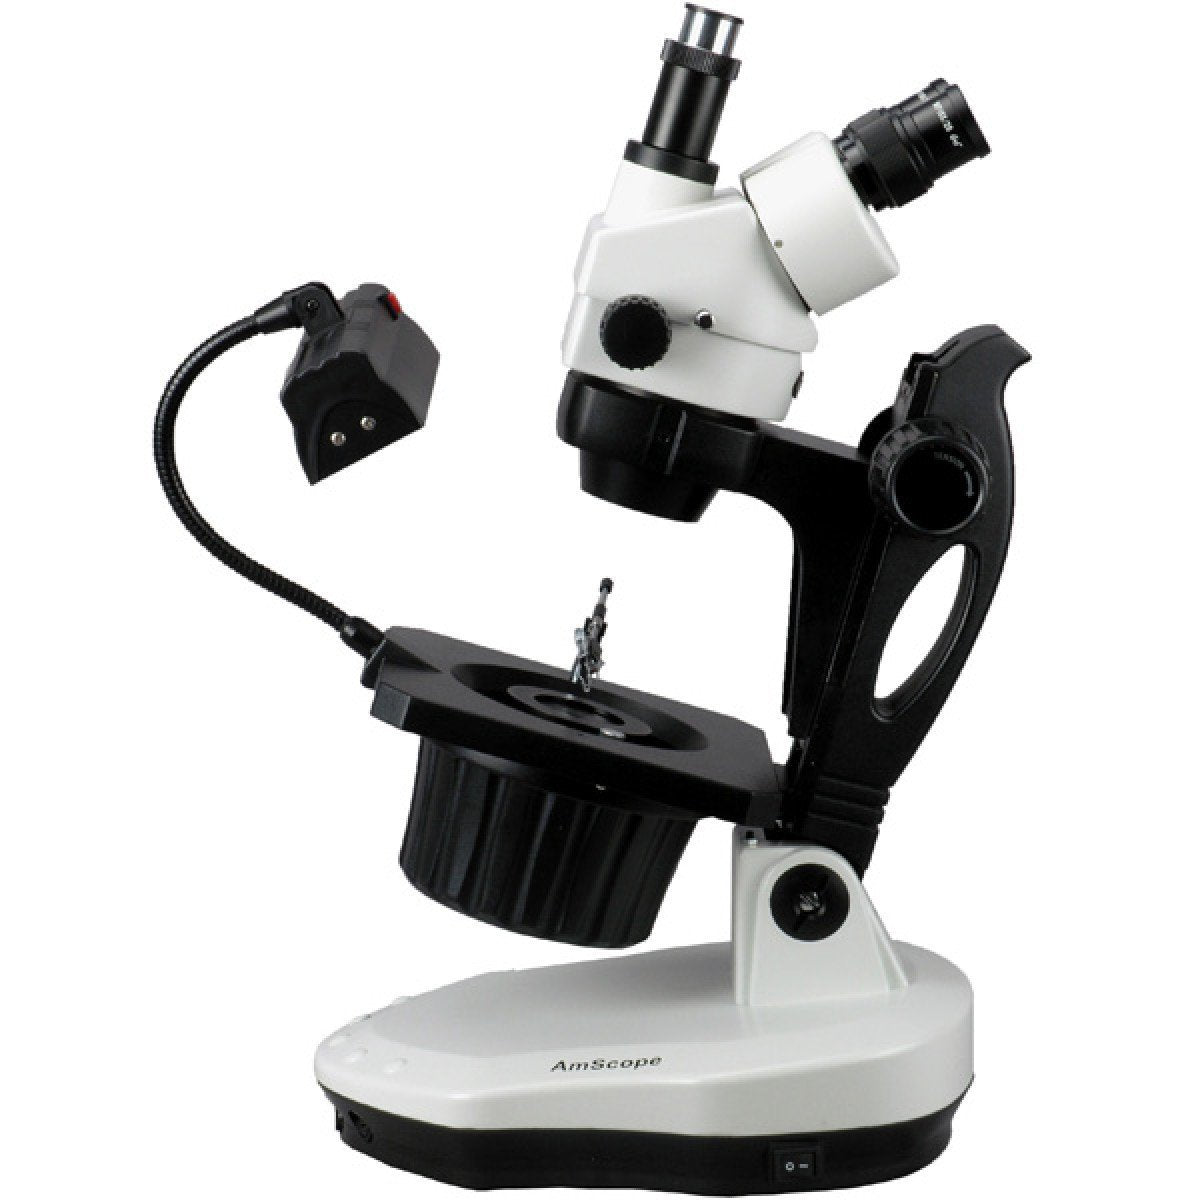 AmScope 3.5X-90X Advanced Jewel Gem Stereo Zoom Microscope